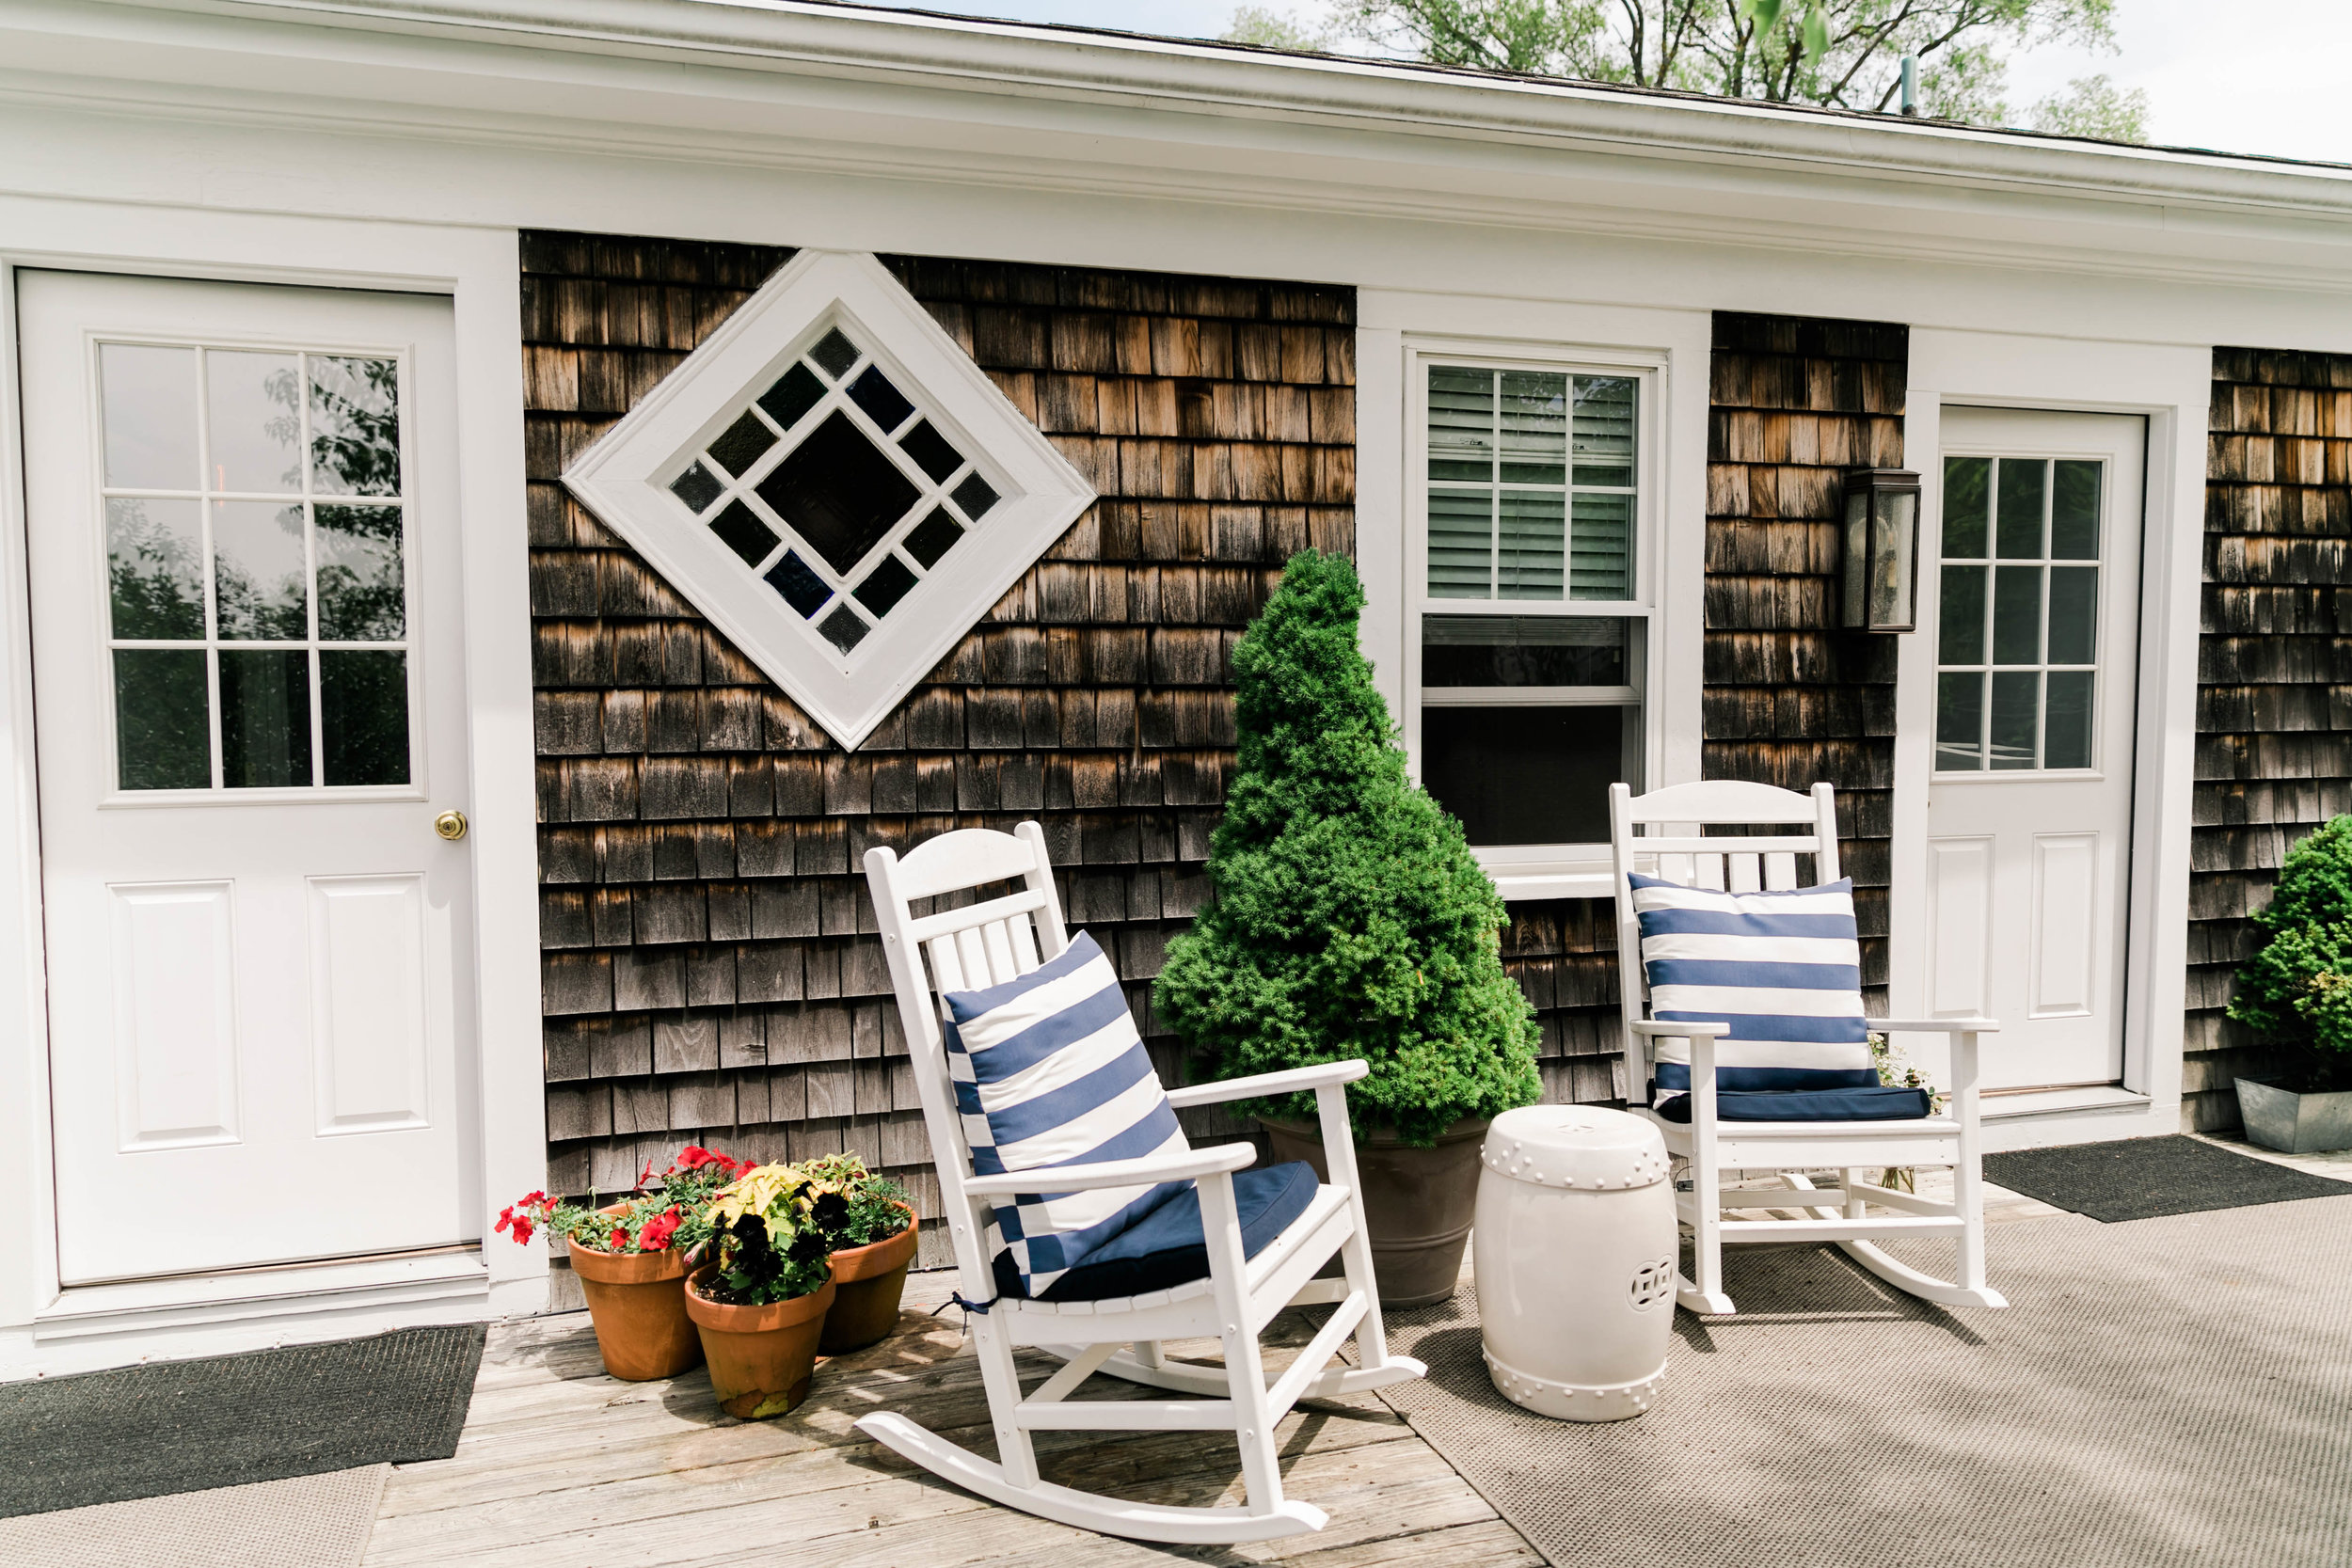 Cape Cod Style house exterior with rocking chairs